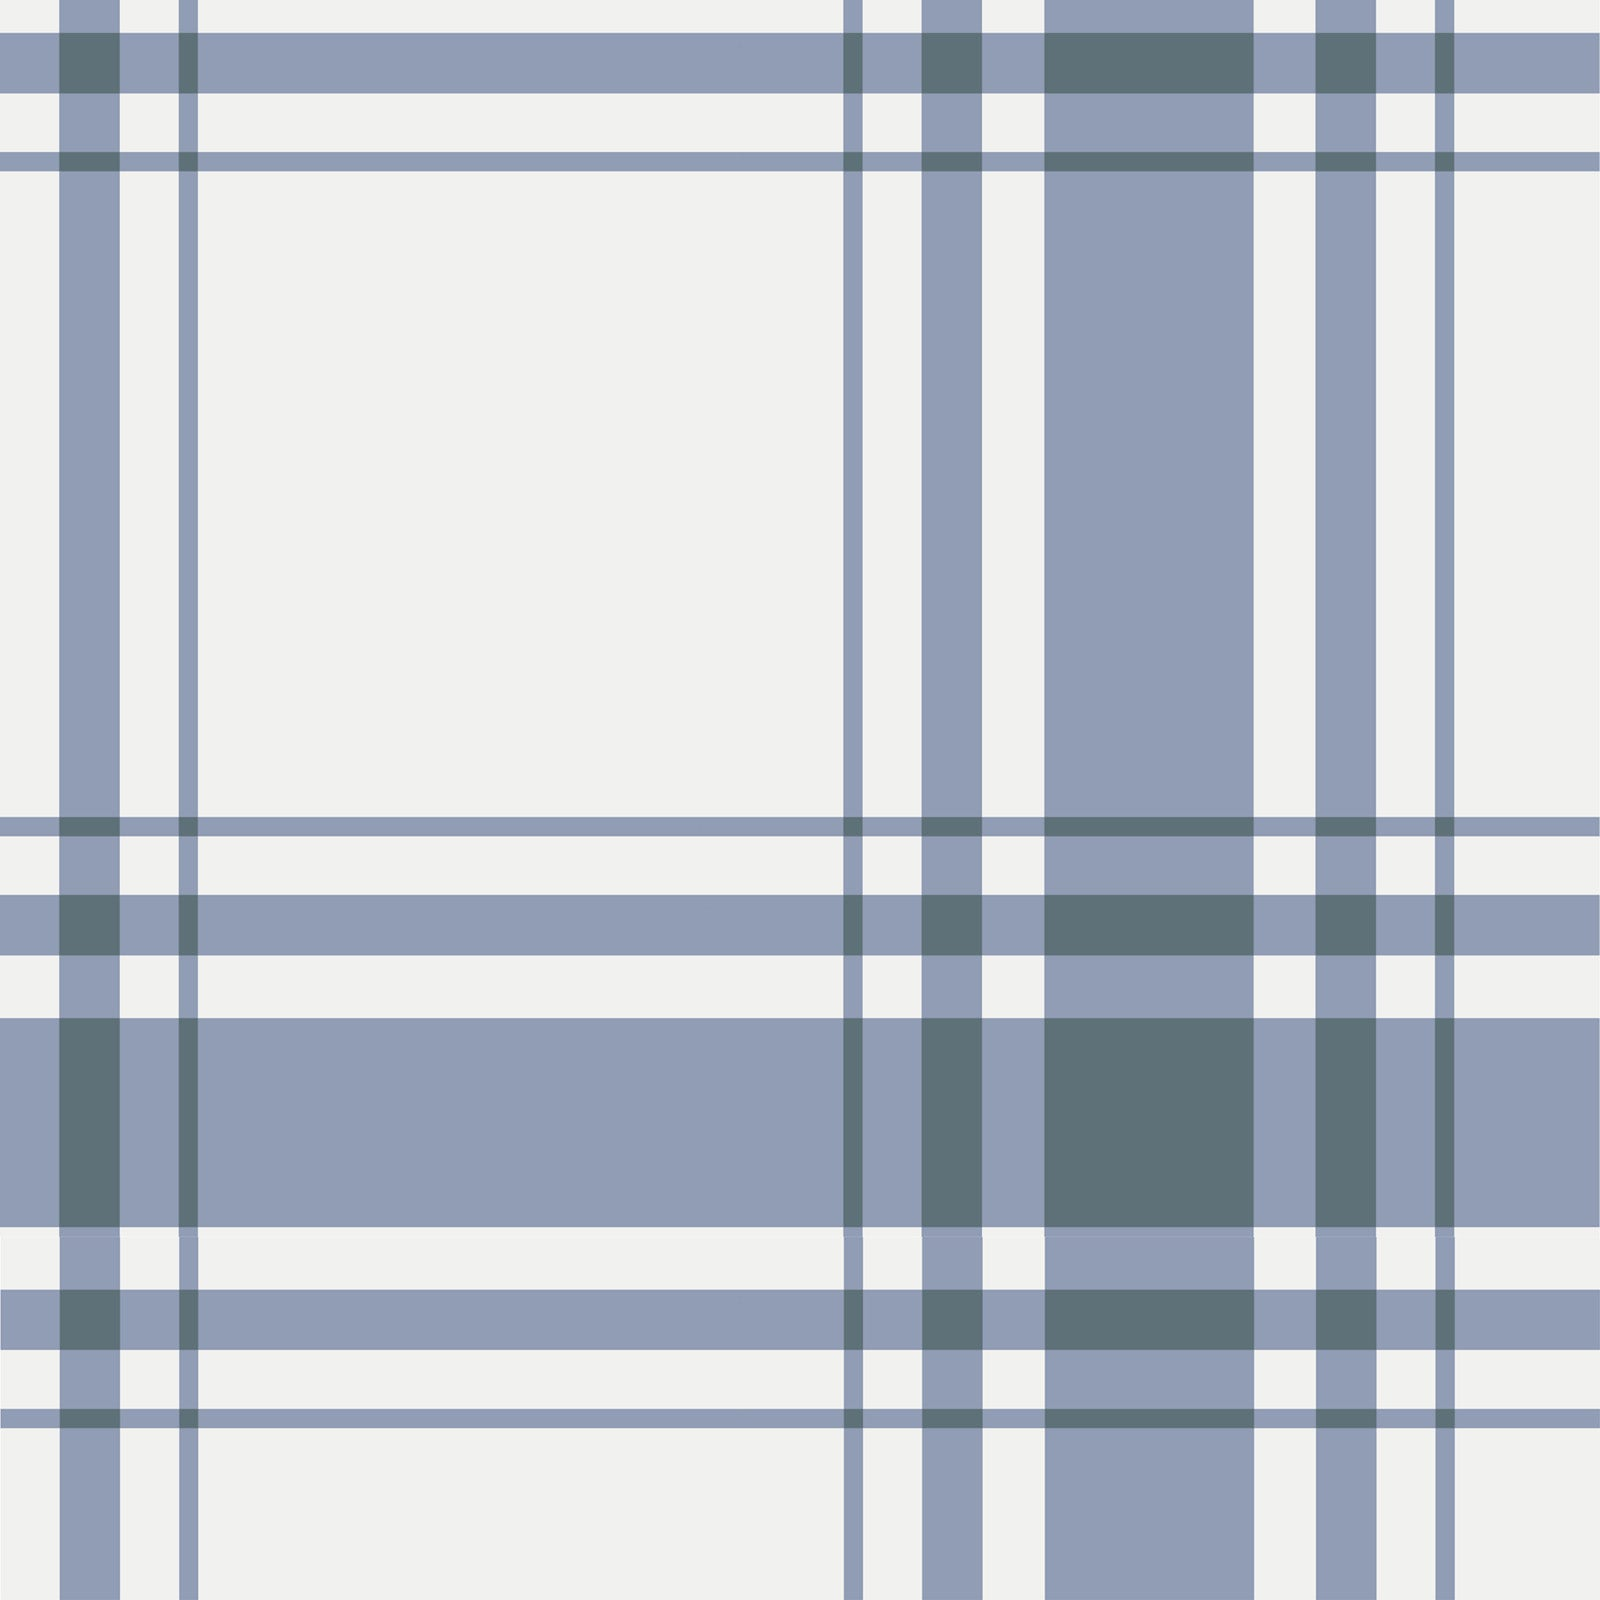 Oxford Plaid Fabric in Periwinkle